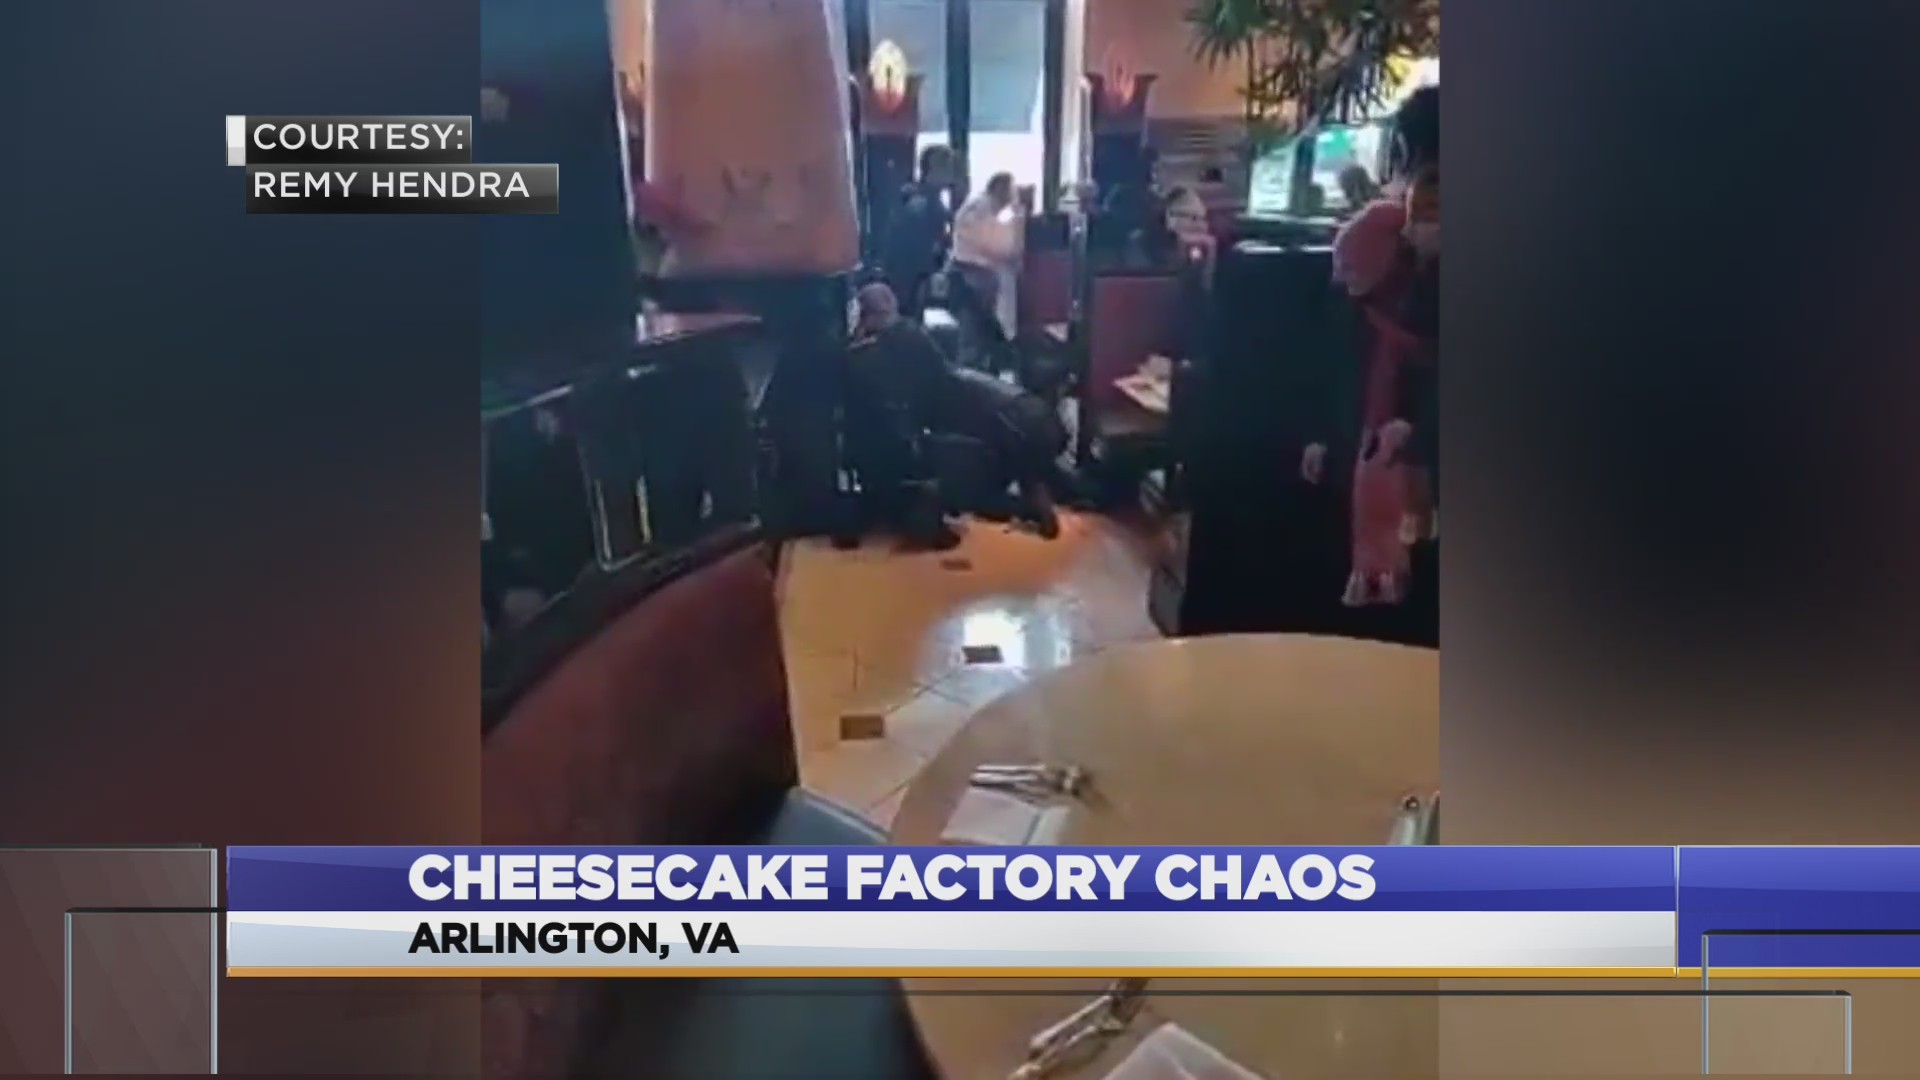 Cheesecake_factory_0_20181206221722